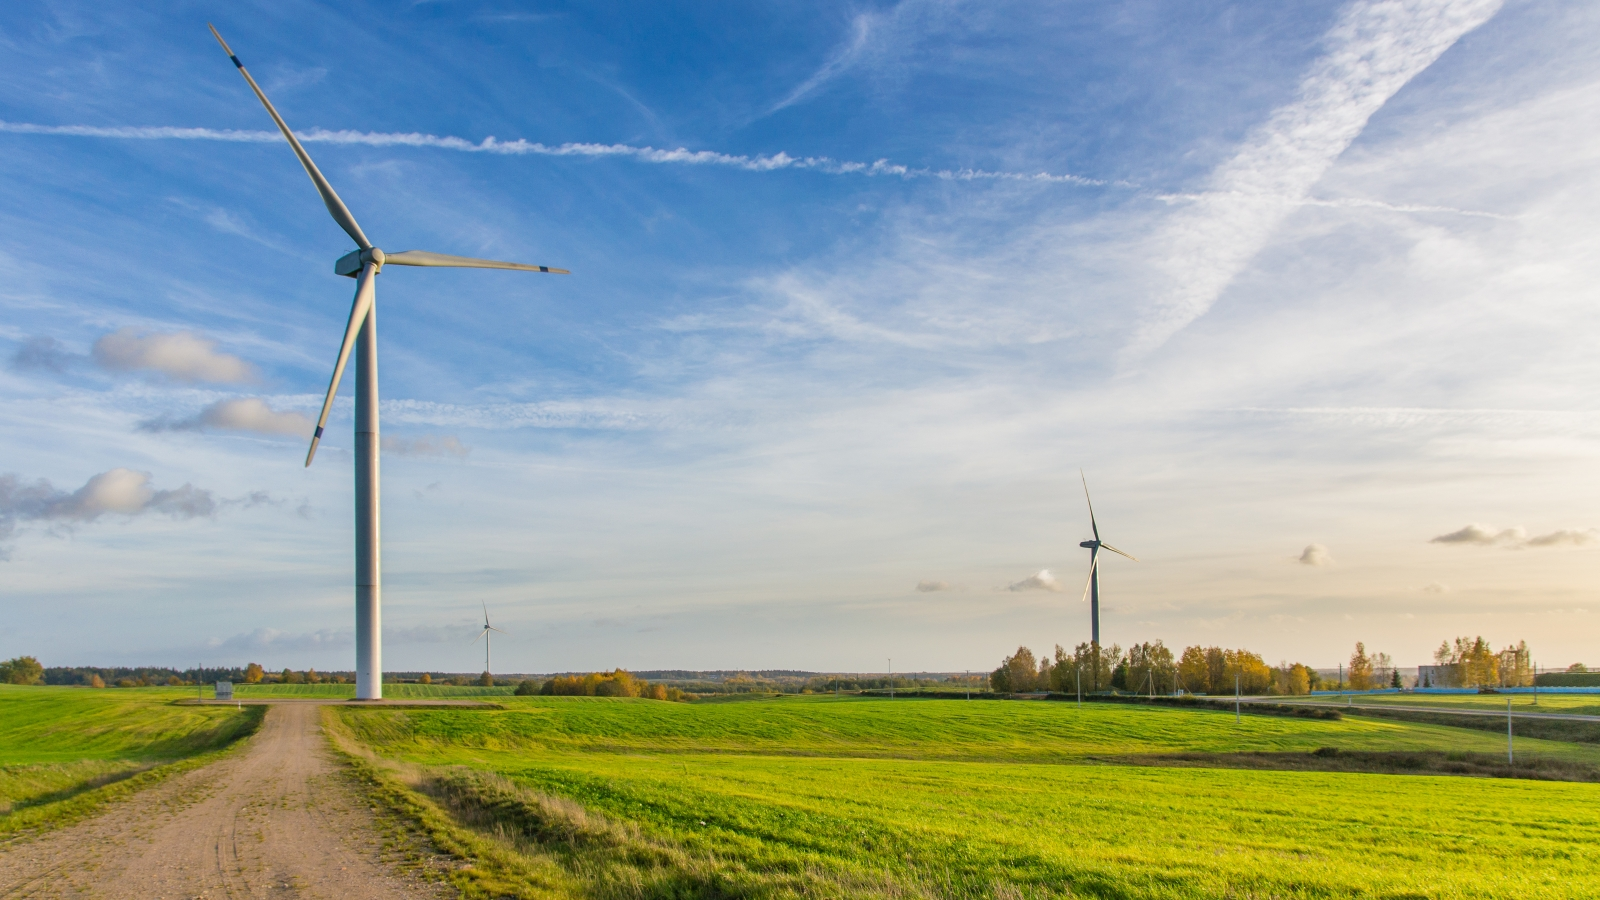 The wind turbines in Belarus. Shutterstock photo. Credit: Ivan Abramkin